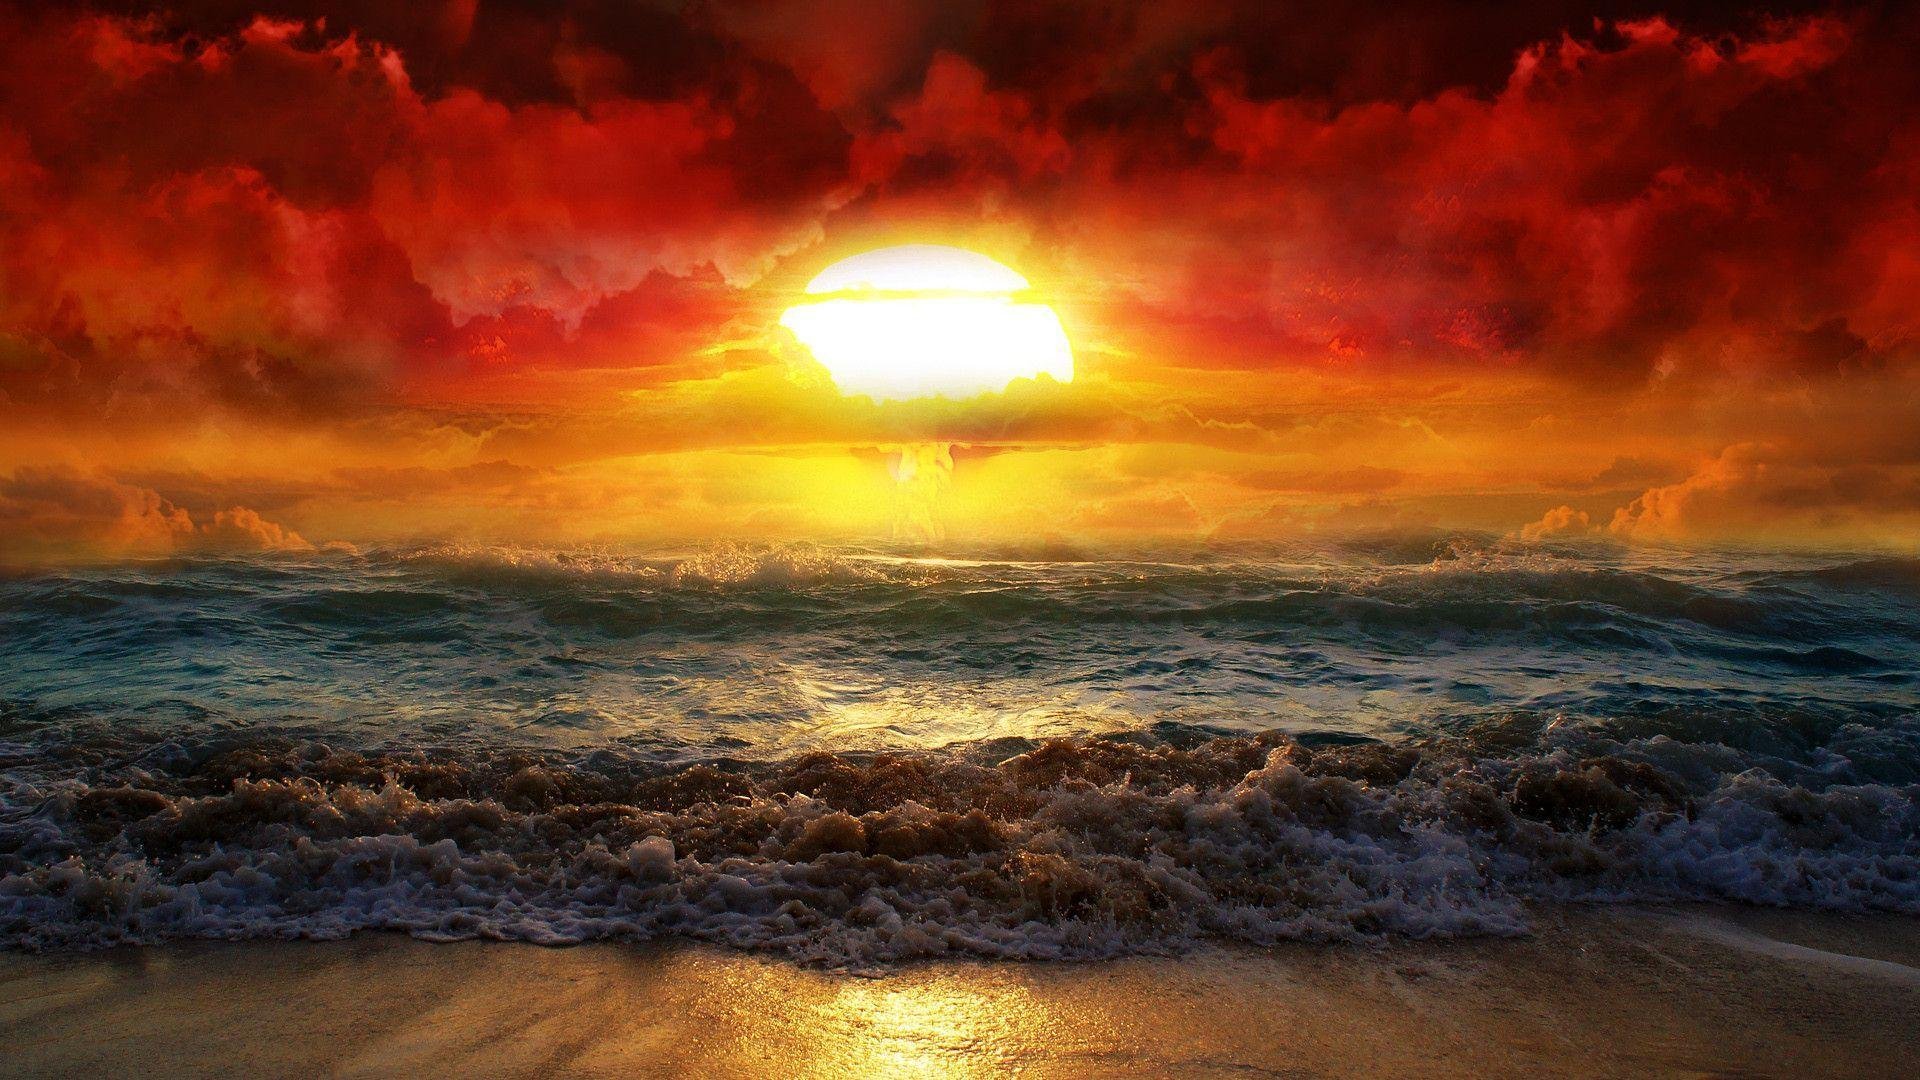 Wallpapers Tagged With SUNRISE | SUNRISE HD Wallpapers | Page 1